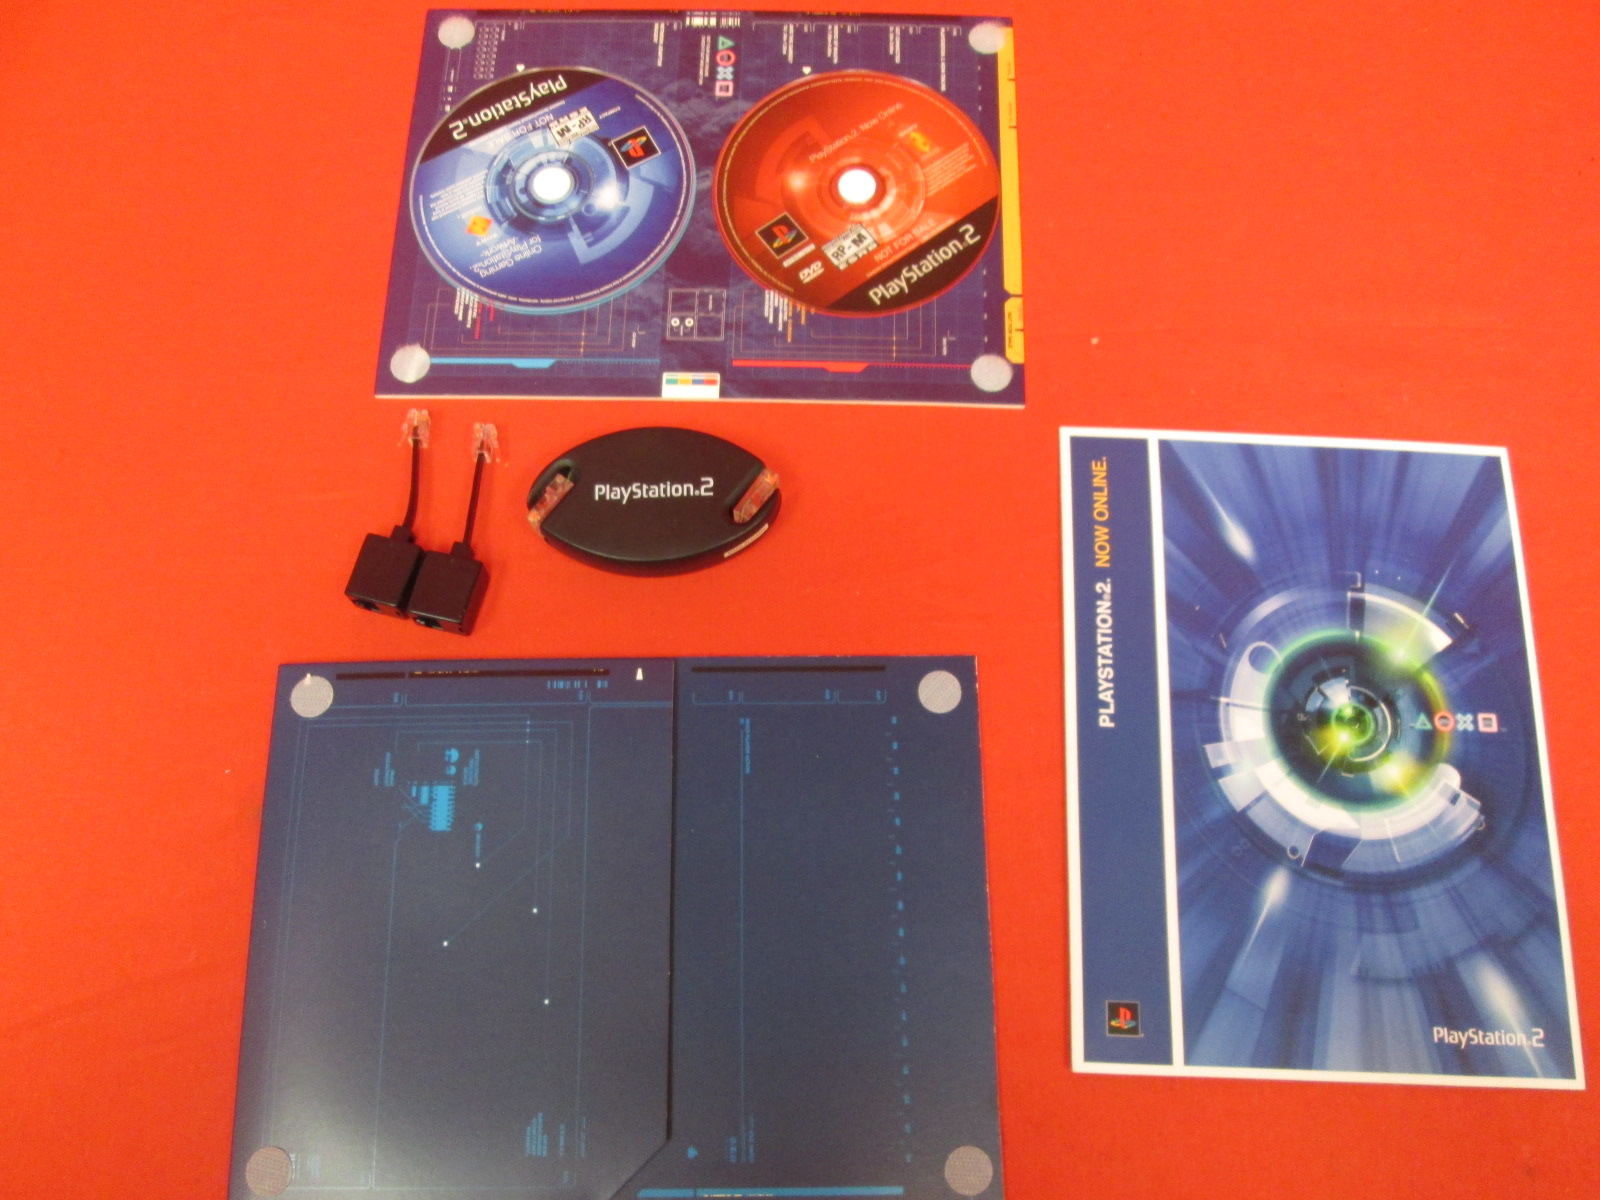 Image 0 of PlayStation 2 Now Online Ethernet Cable And Discs